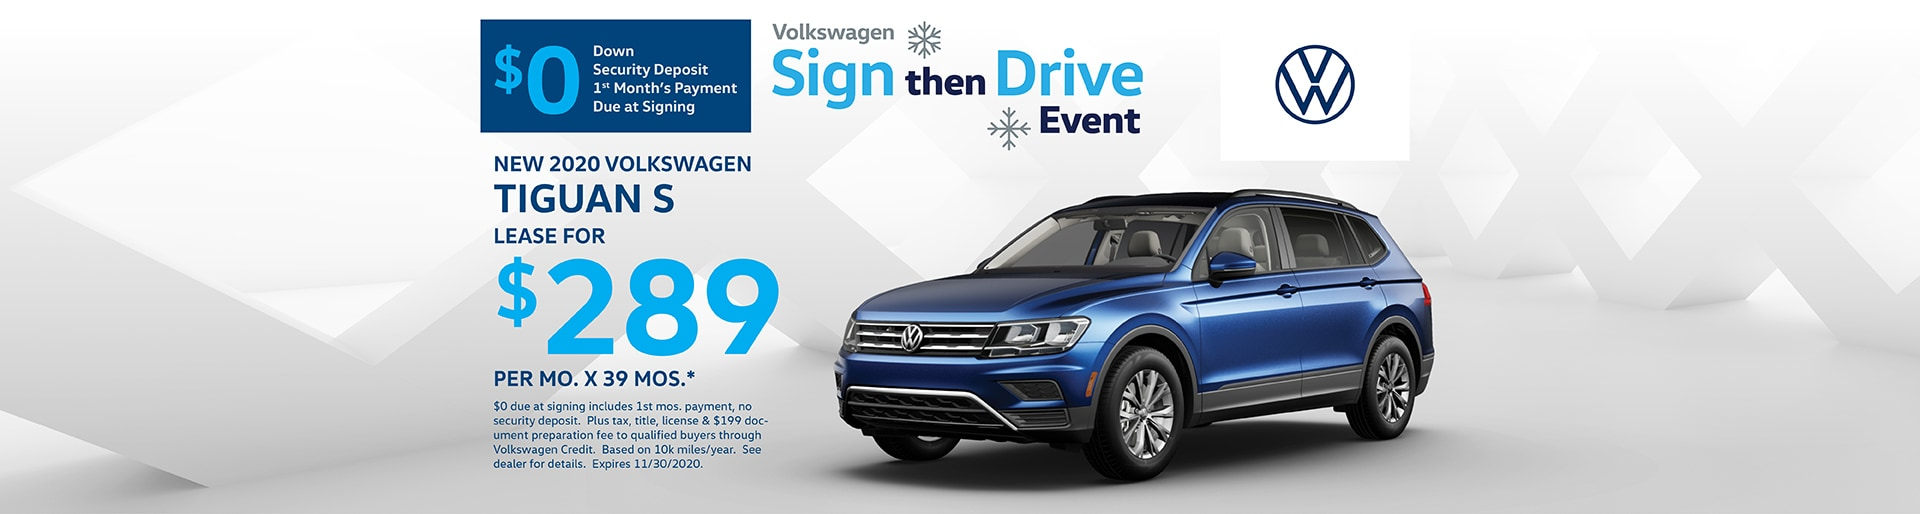 2020 Volkswagen Tiguan Special Offer | Merrillville, IN